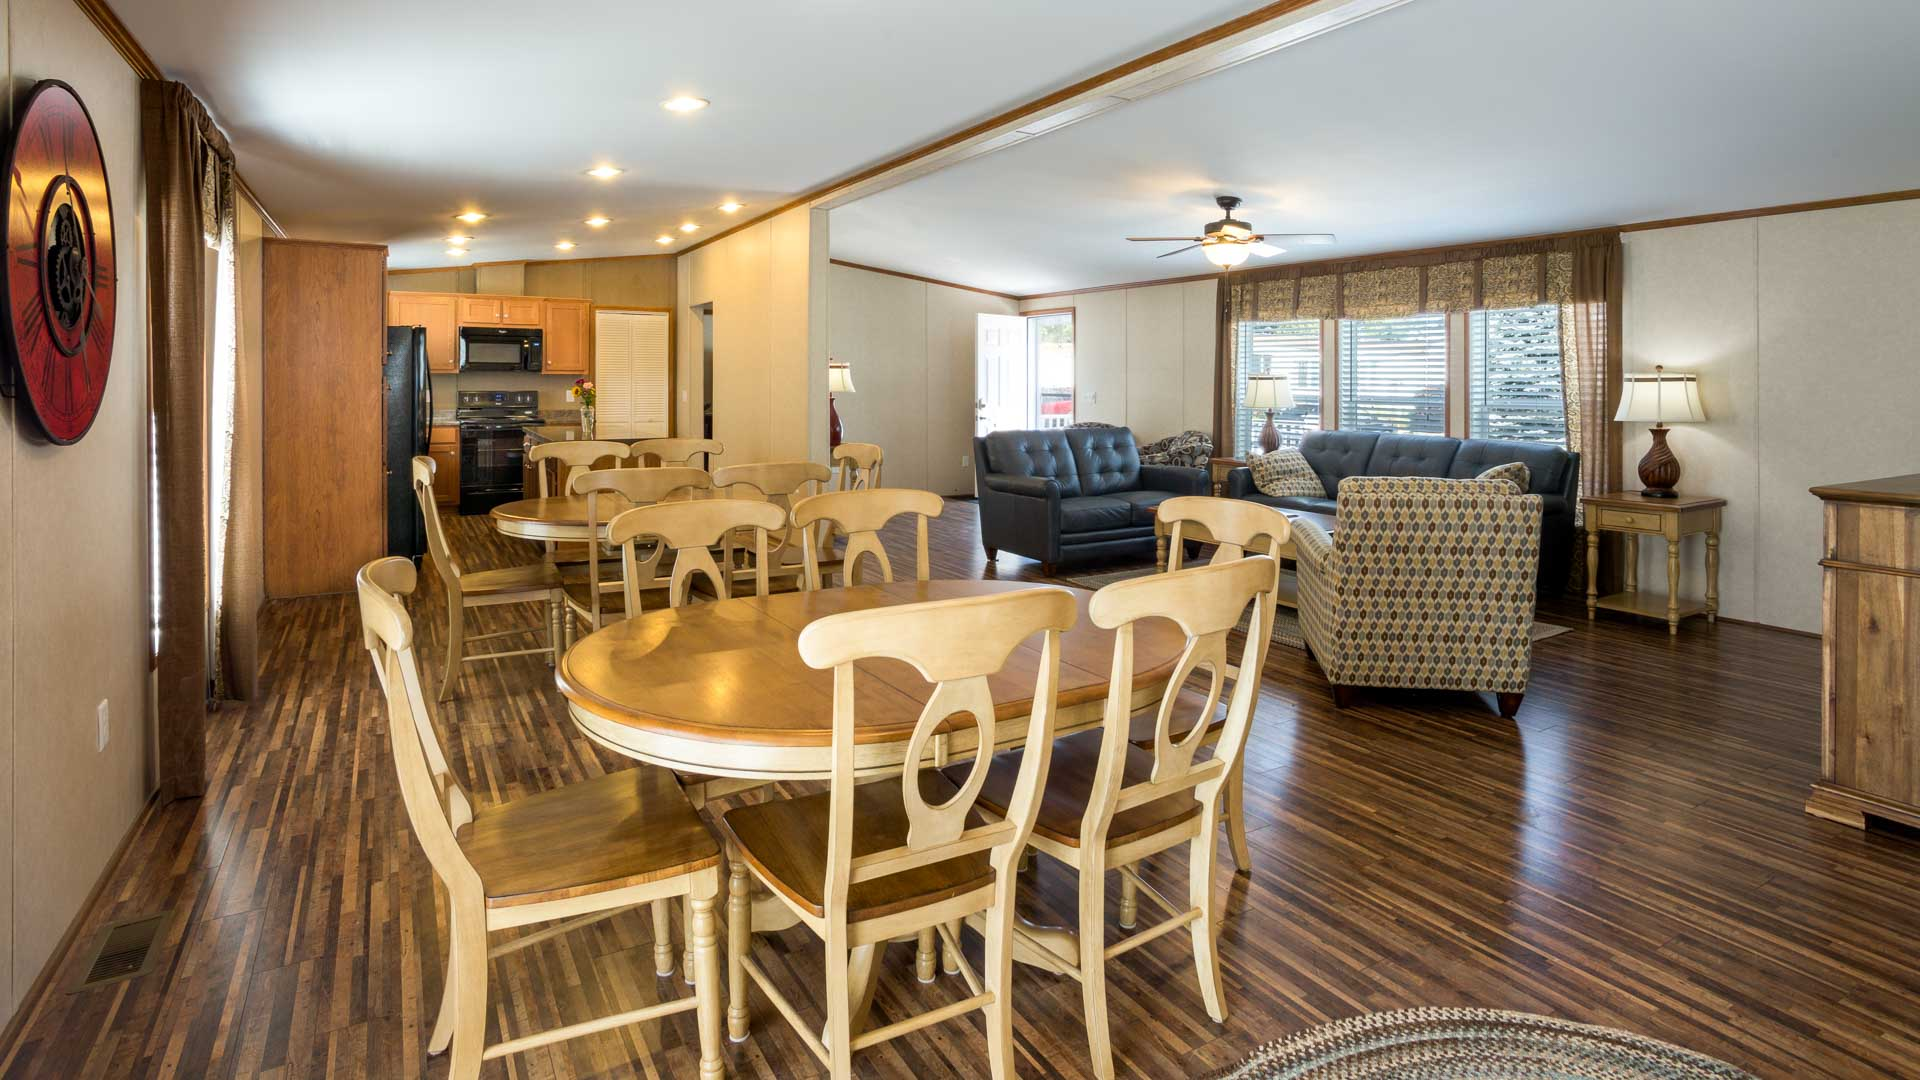 Community Center Interior at Town and Country Village Manufactured Homes in Lisbon ME